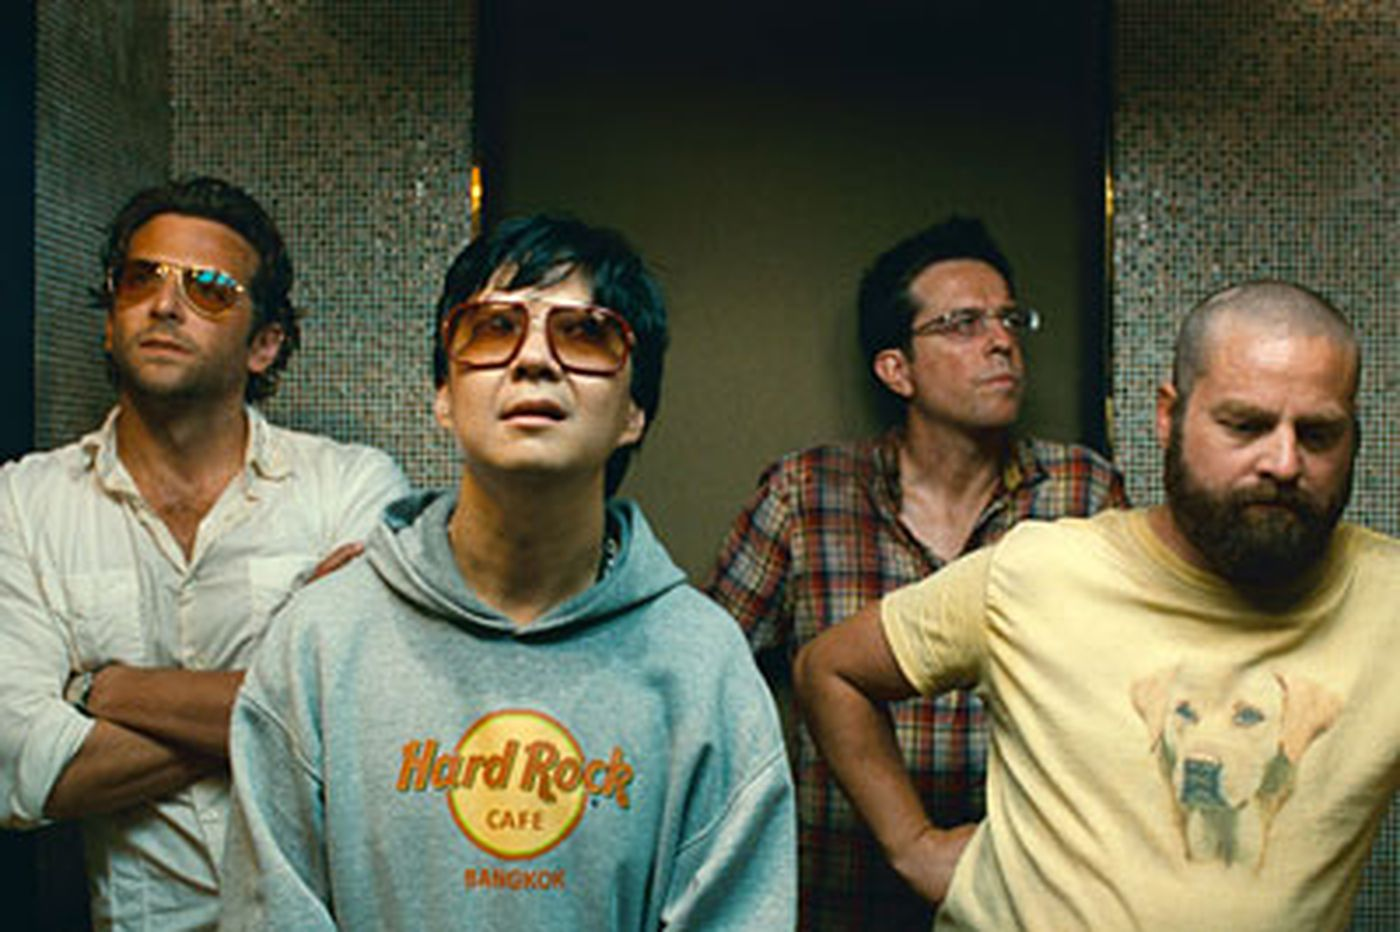 Too much hangs over in new 'Hangover'